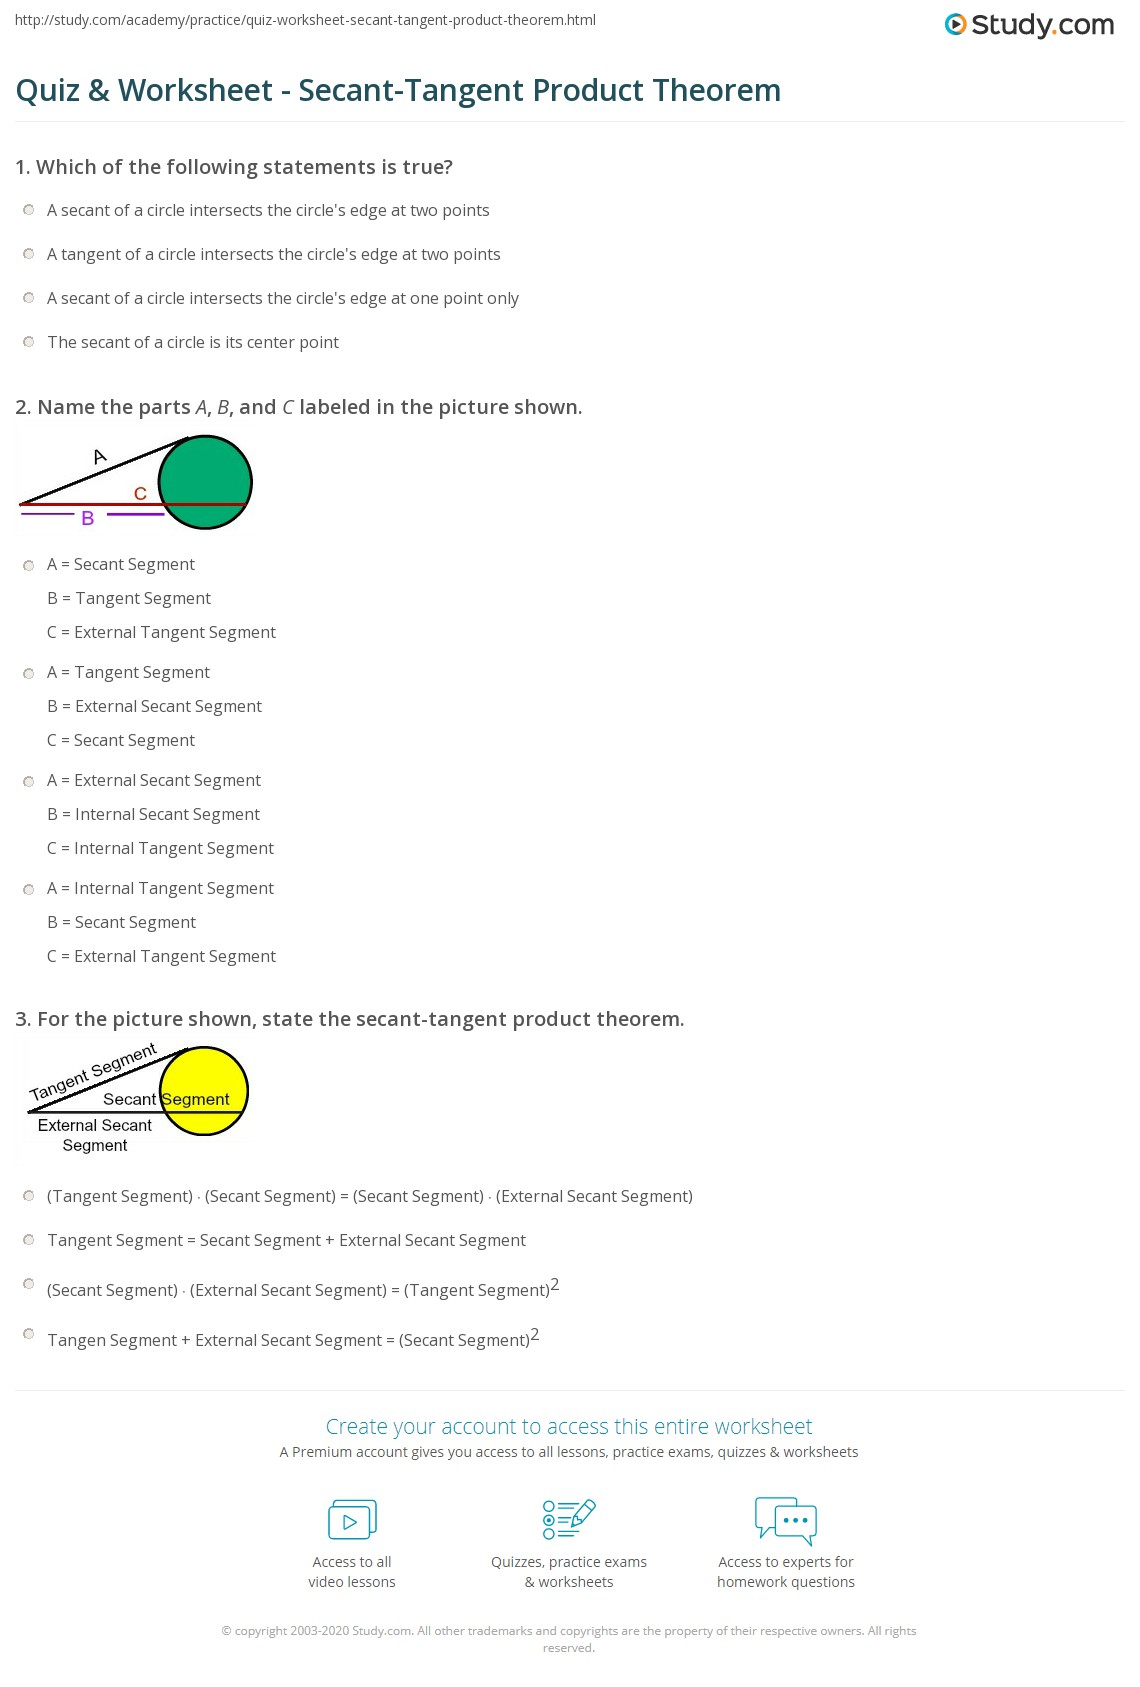 Quiz Worksheet Secant Tangent Product Theorem Study